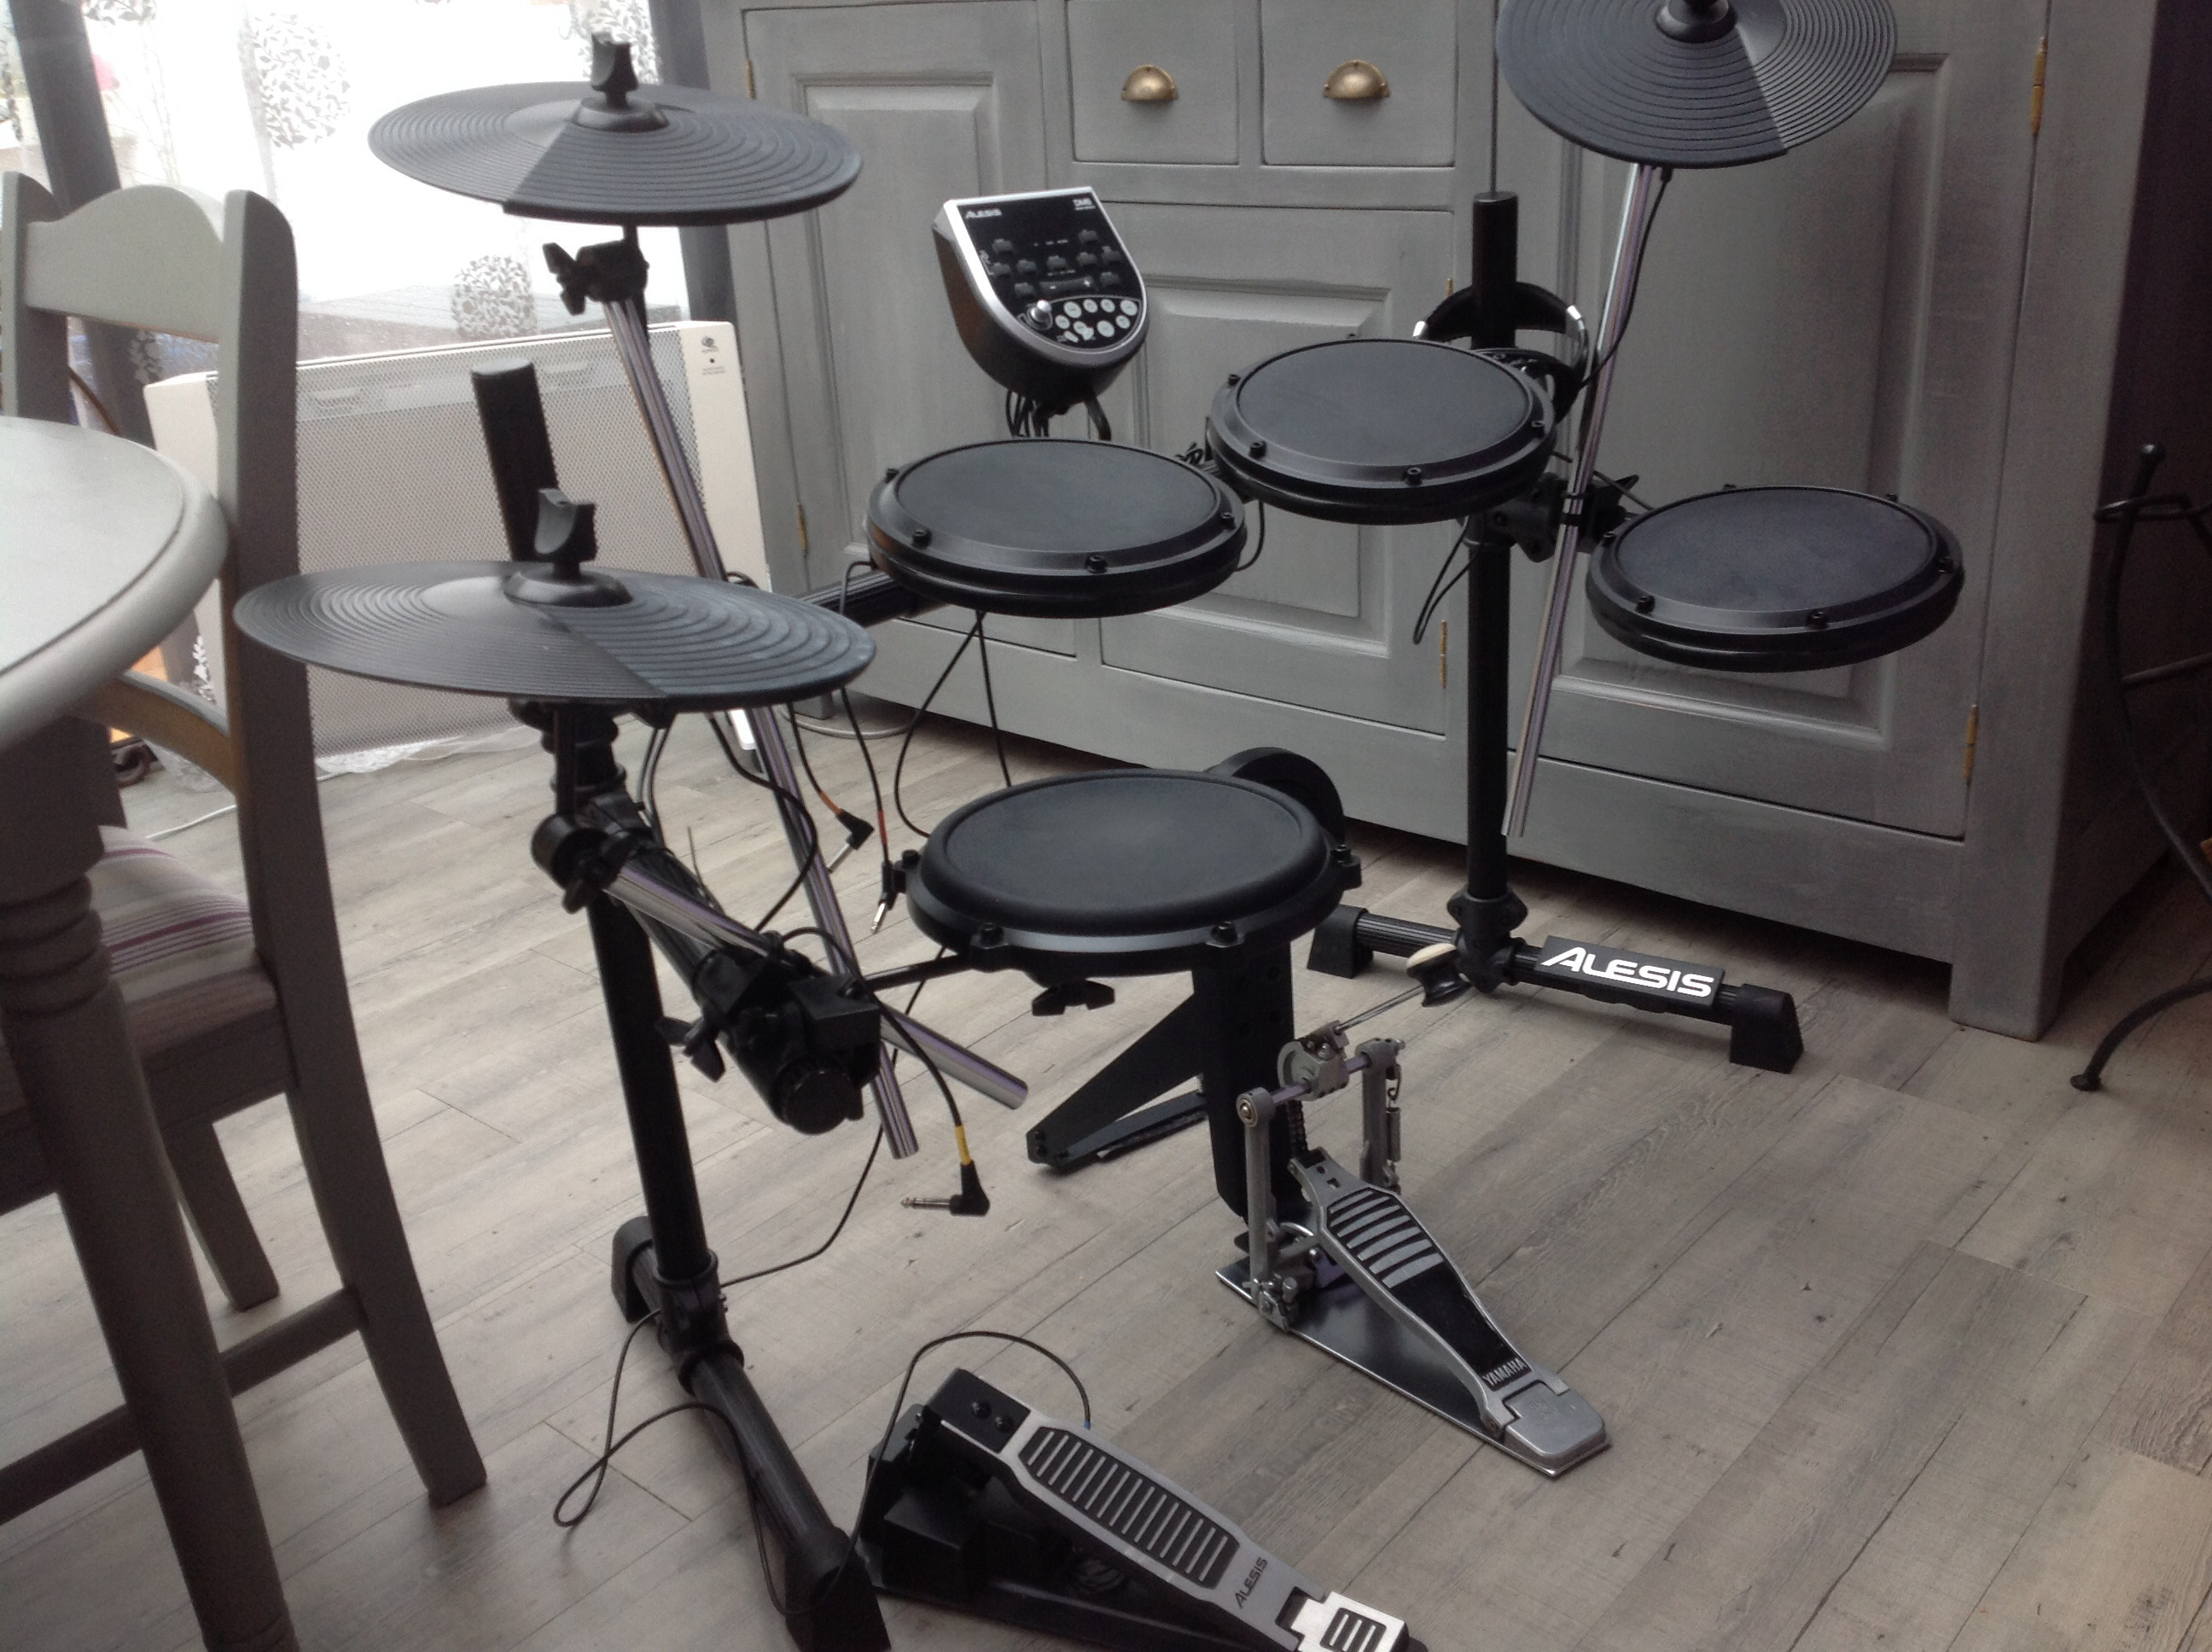 Best Budget Electronic Drum Set 2019